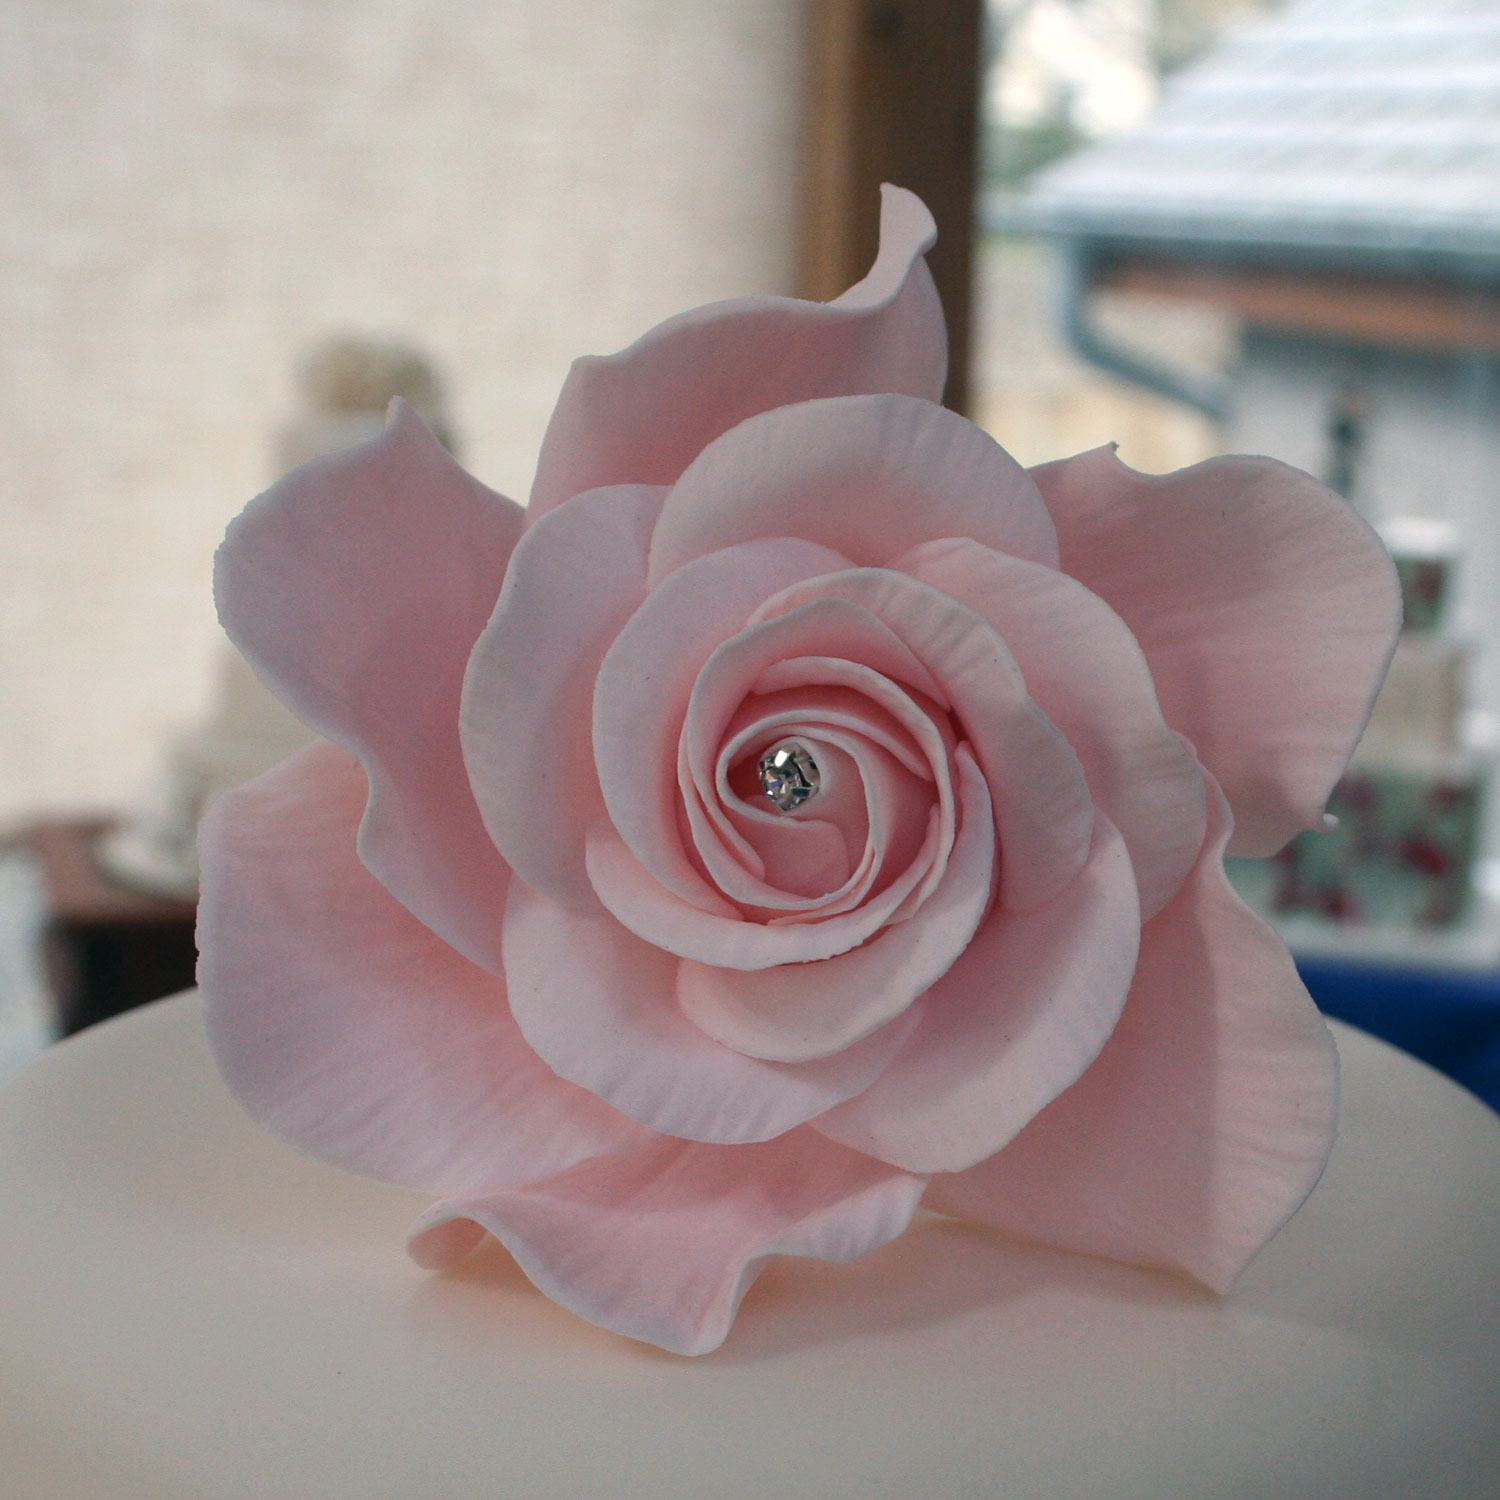 Giant Diamante Pink Sugar Rose Handcrafted Sugar Rose Cake Toppers